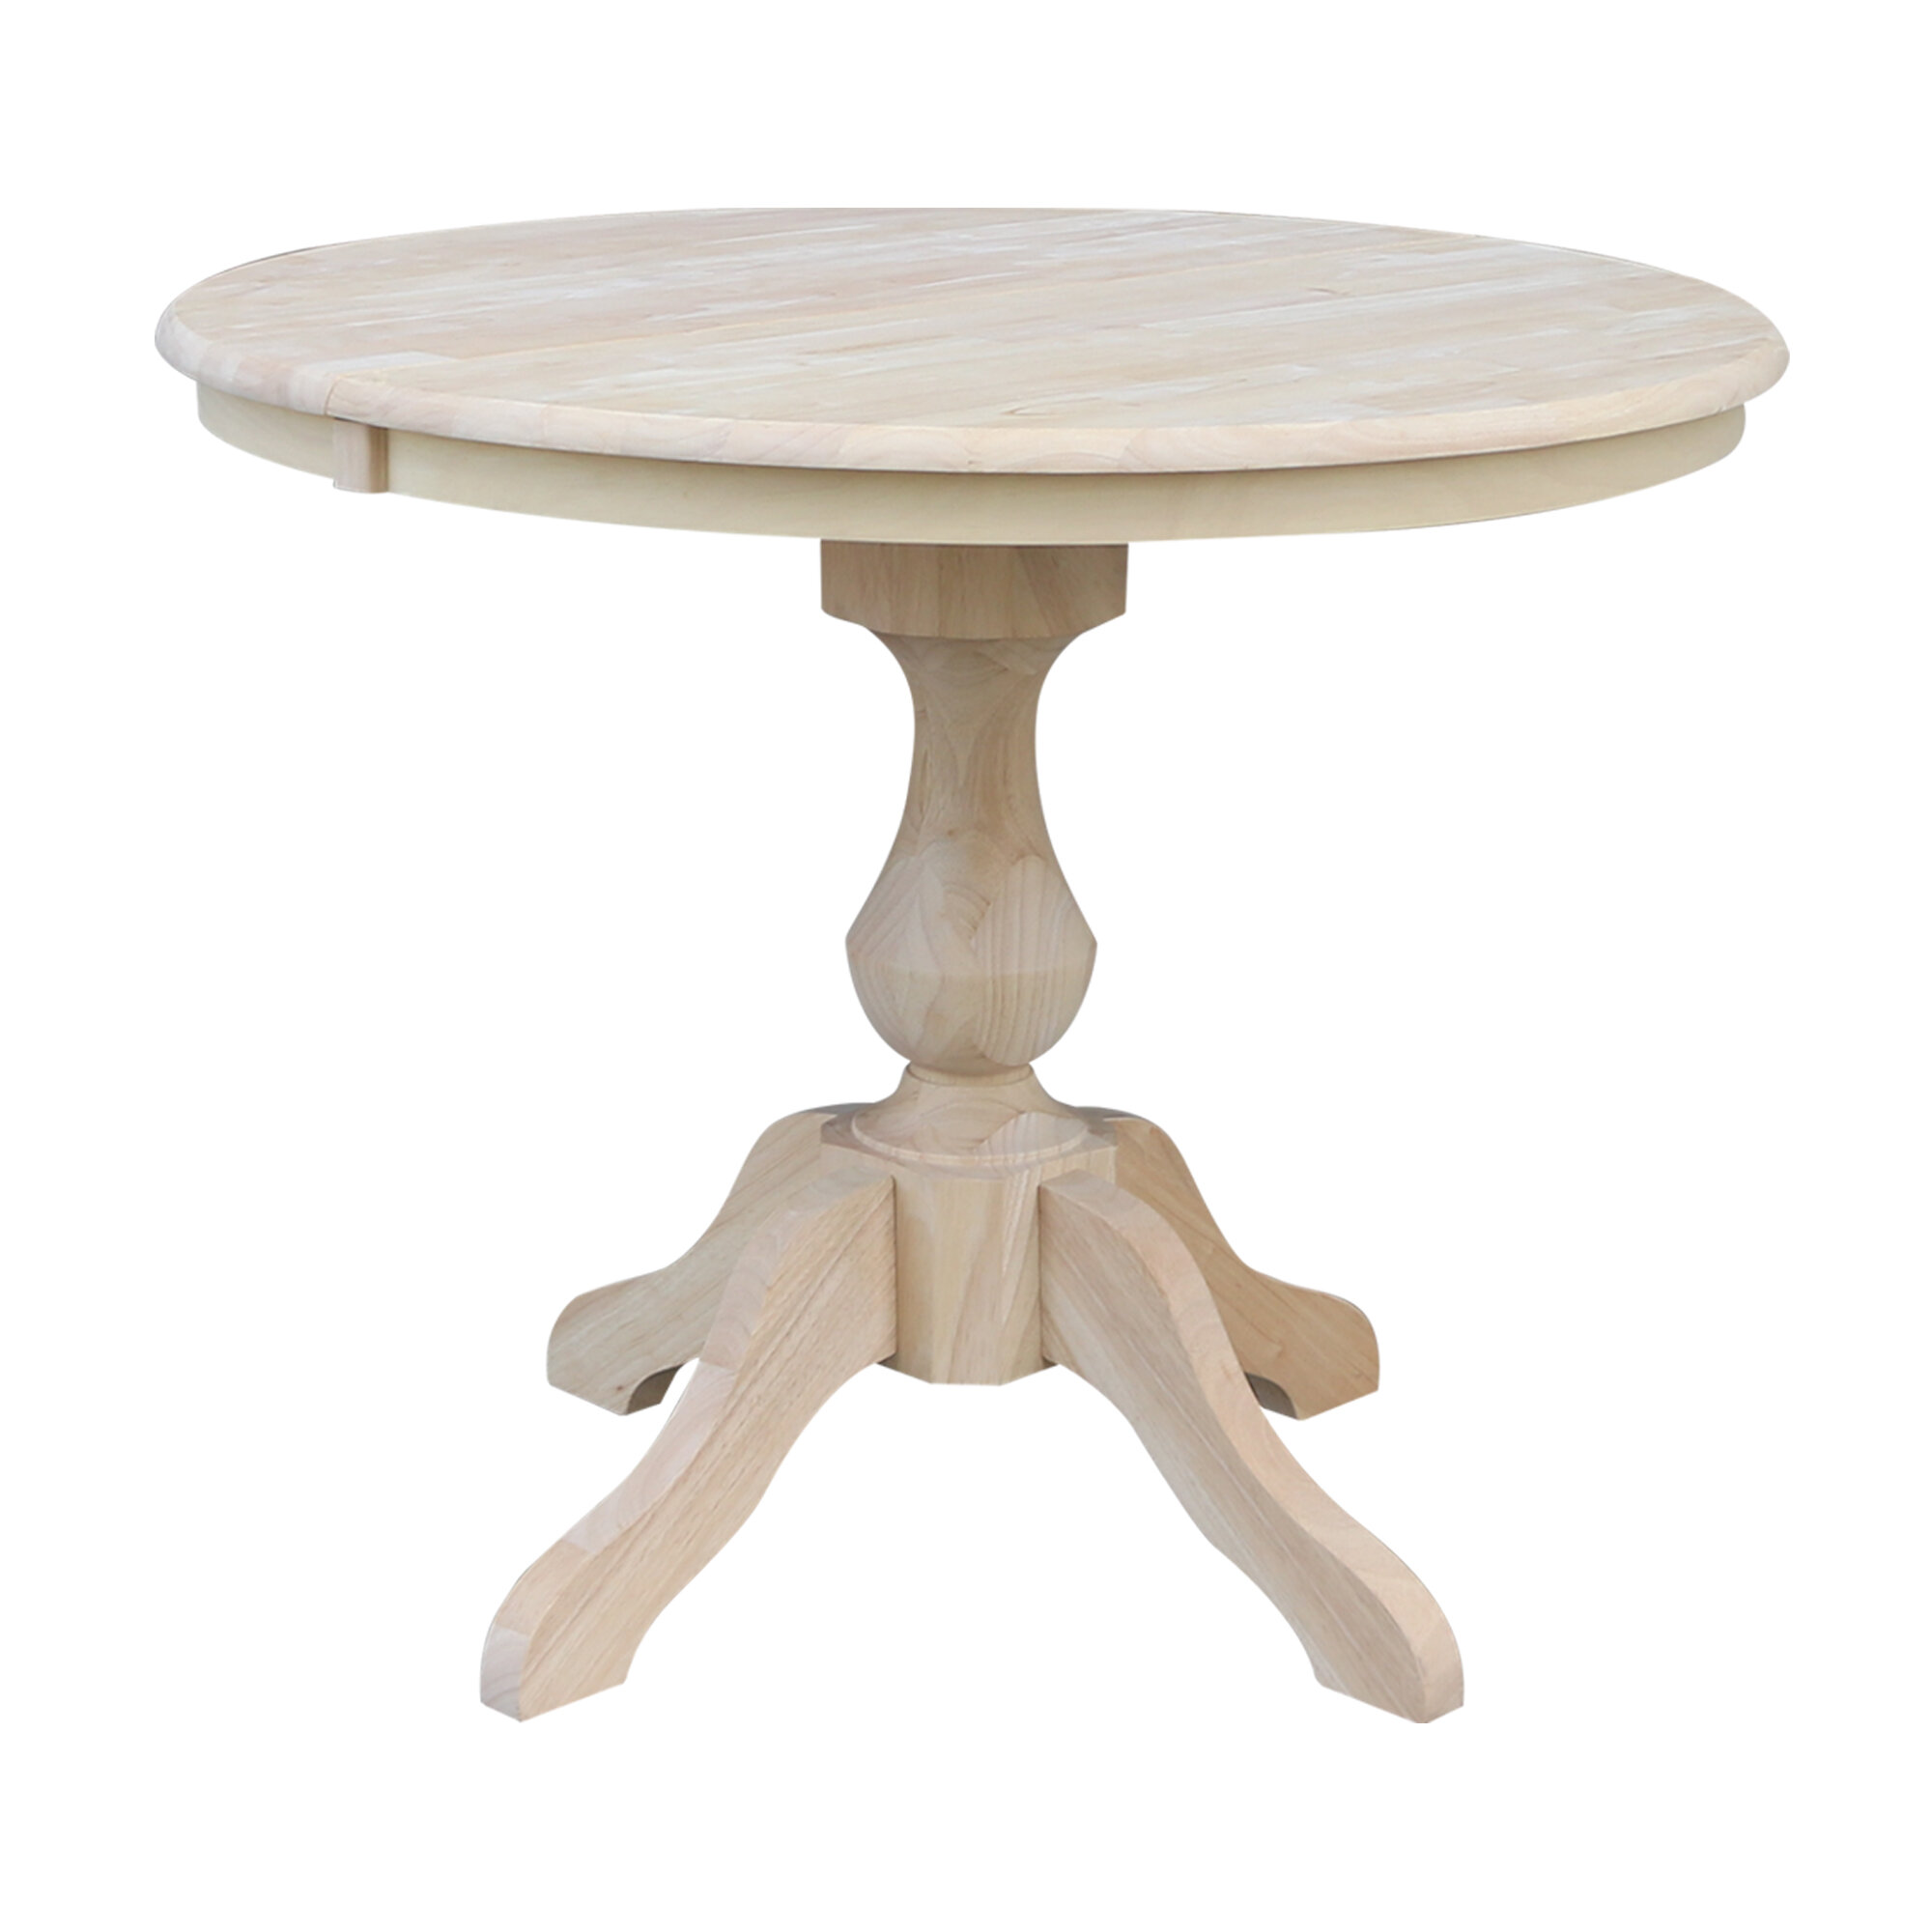 Unfinished Dining Tables  Up to 6% Off Through 6/6  Wayfair